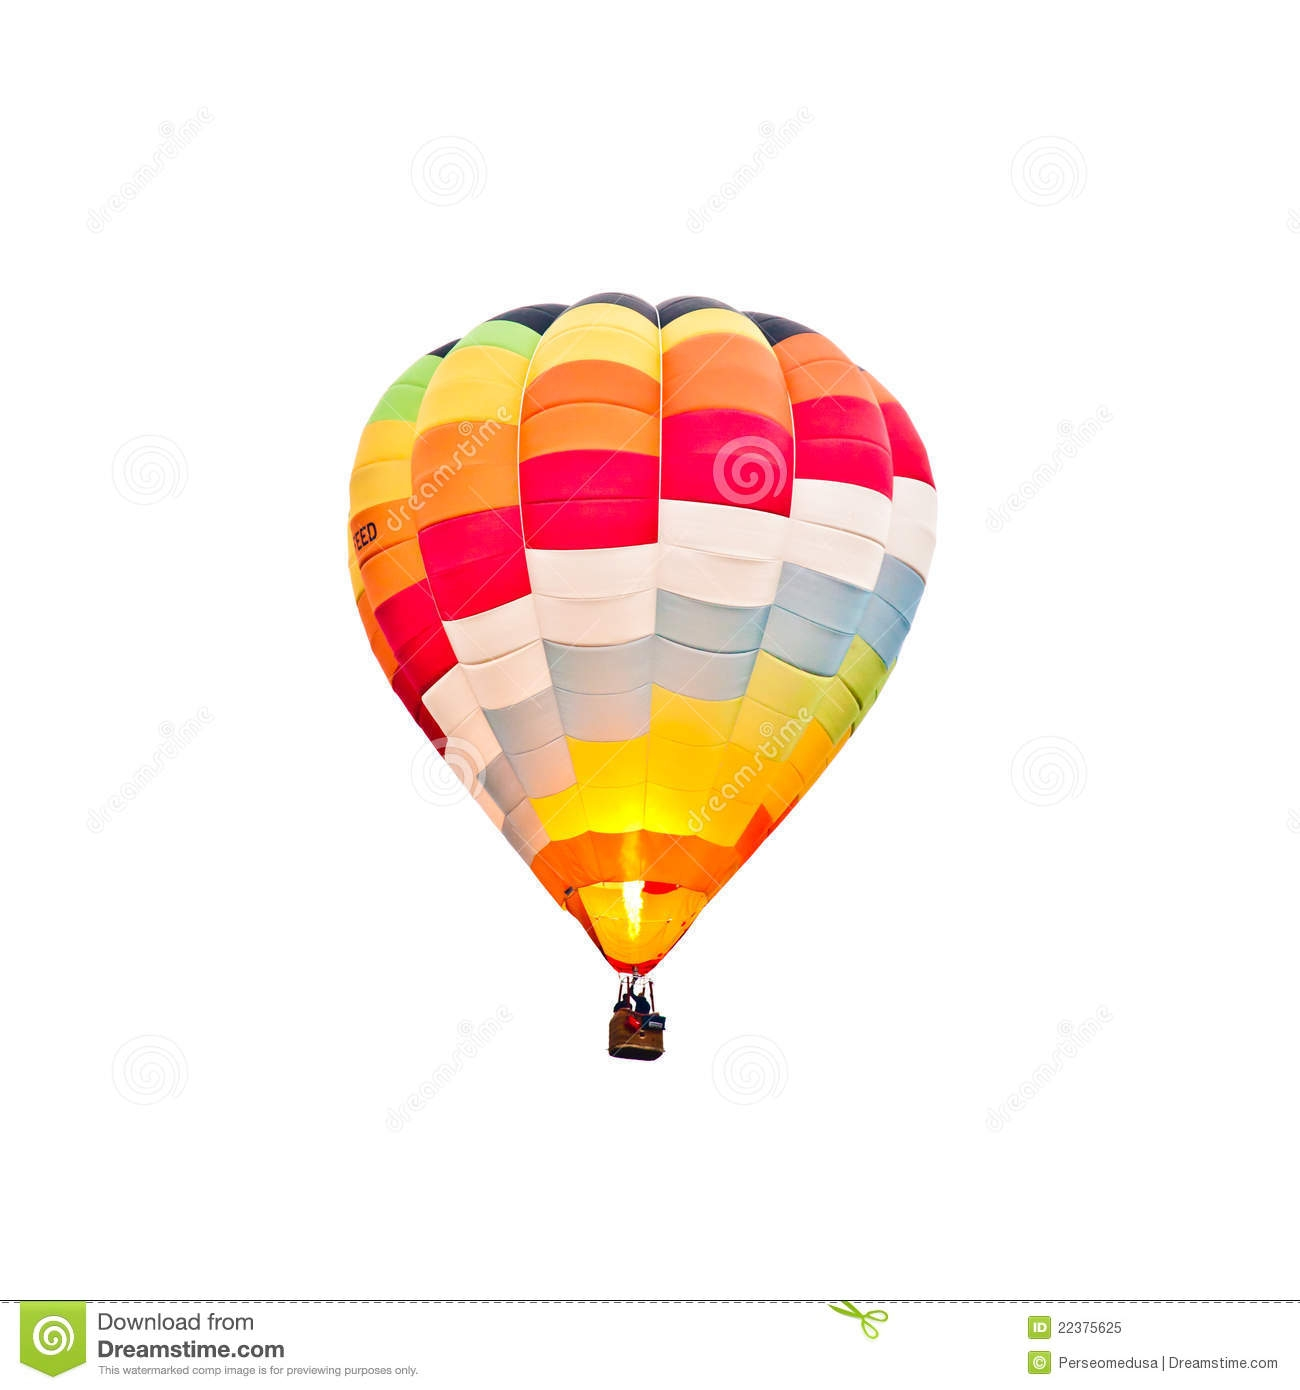 balloon coloring pages - royalty free stock photo fire balloon image